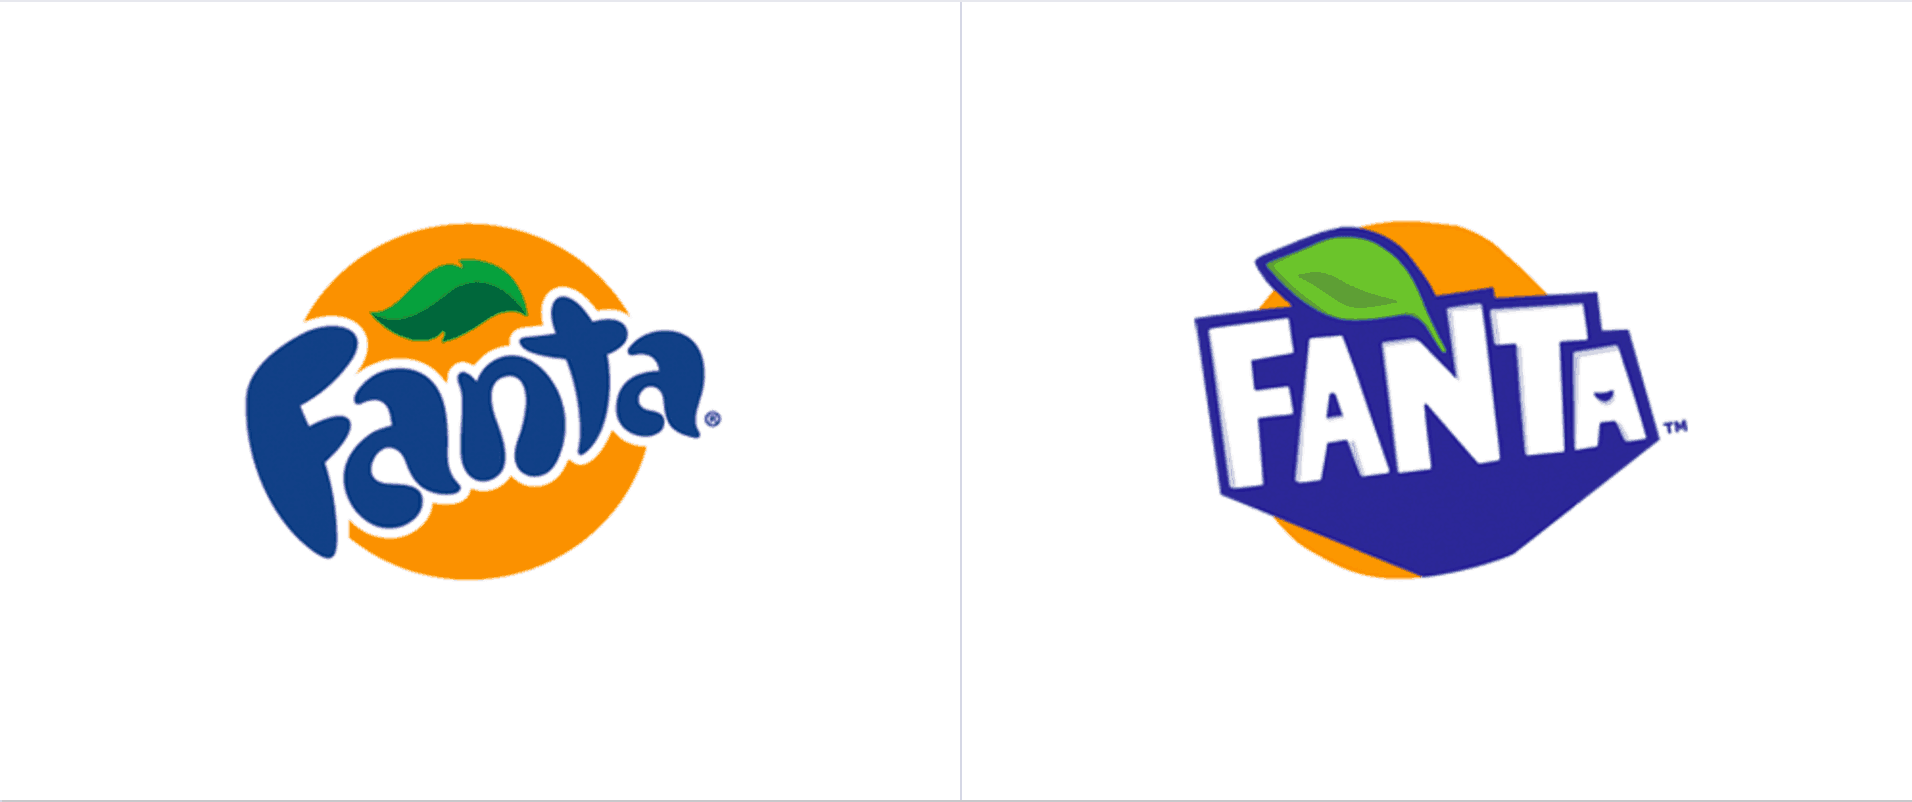 marketing mix of fanta We have defined the target market for fanta and orangina and we have also analyzed the marketing-mix (product, price, place & promotion) for each of them click here to read our articles : fanta & orangina.